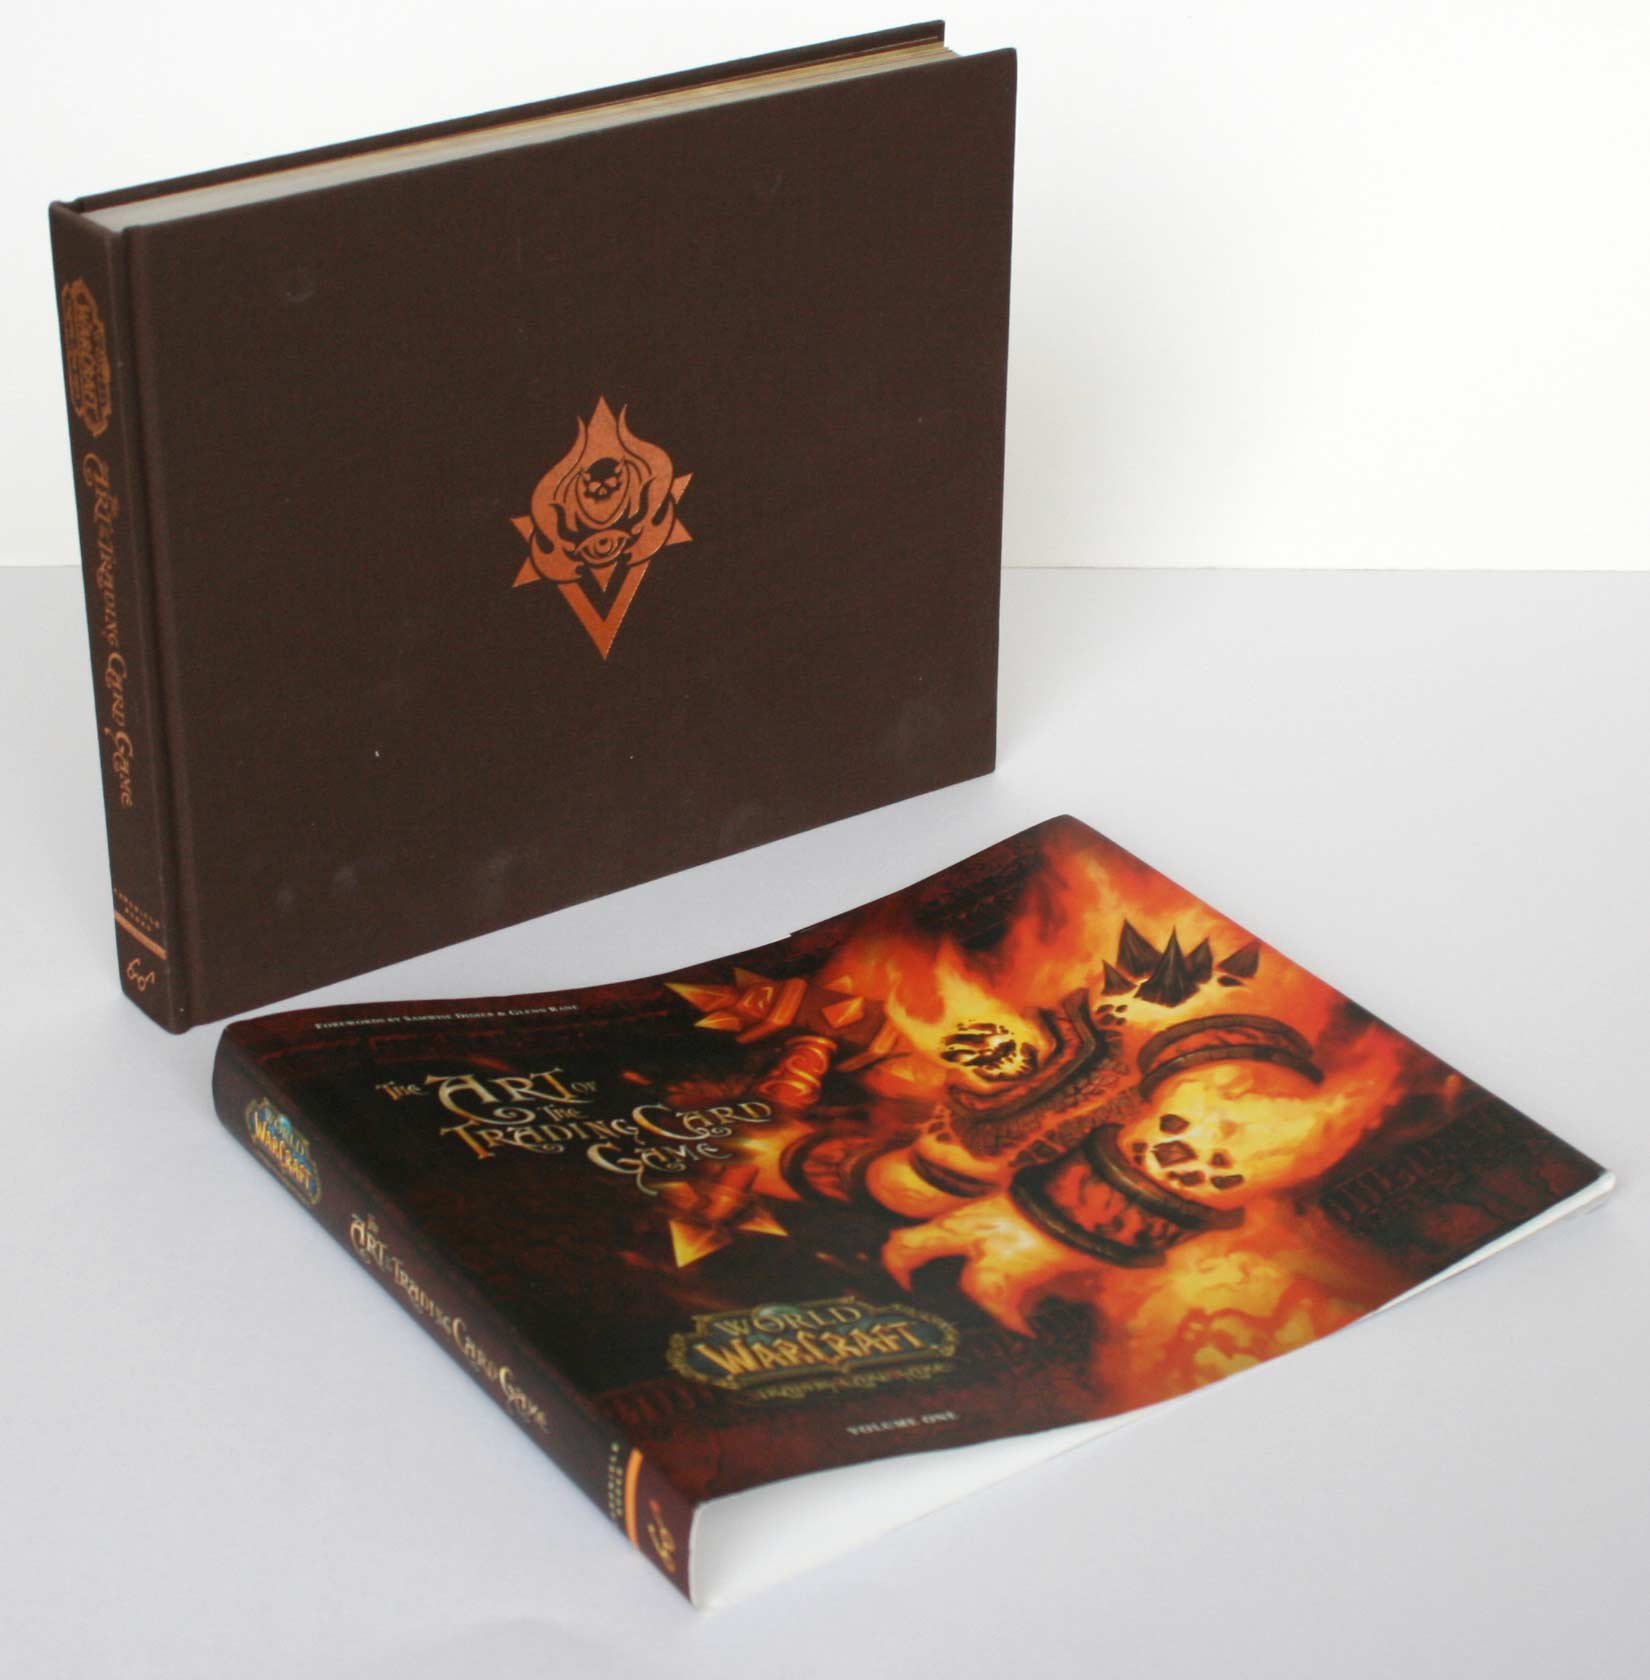 World of Warcraft : The Art of the Trading Card Game (Art book) - couverture de protection enleve